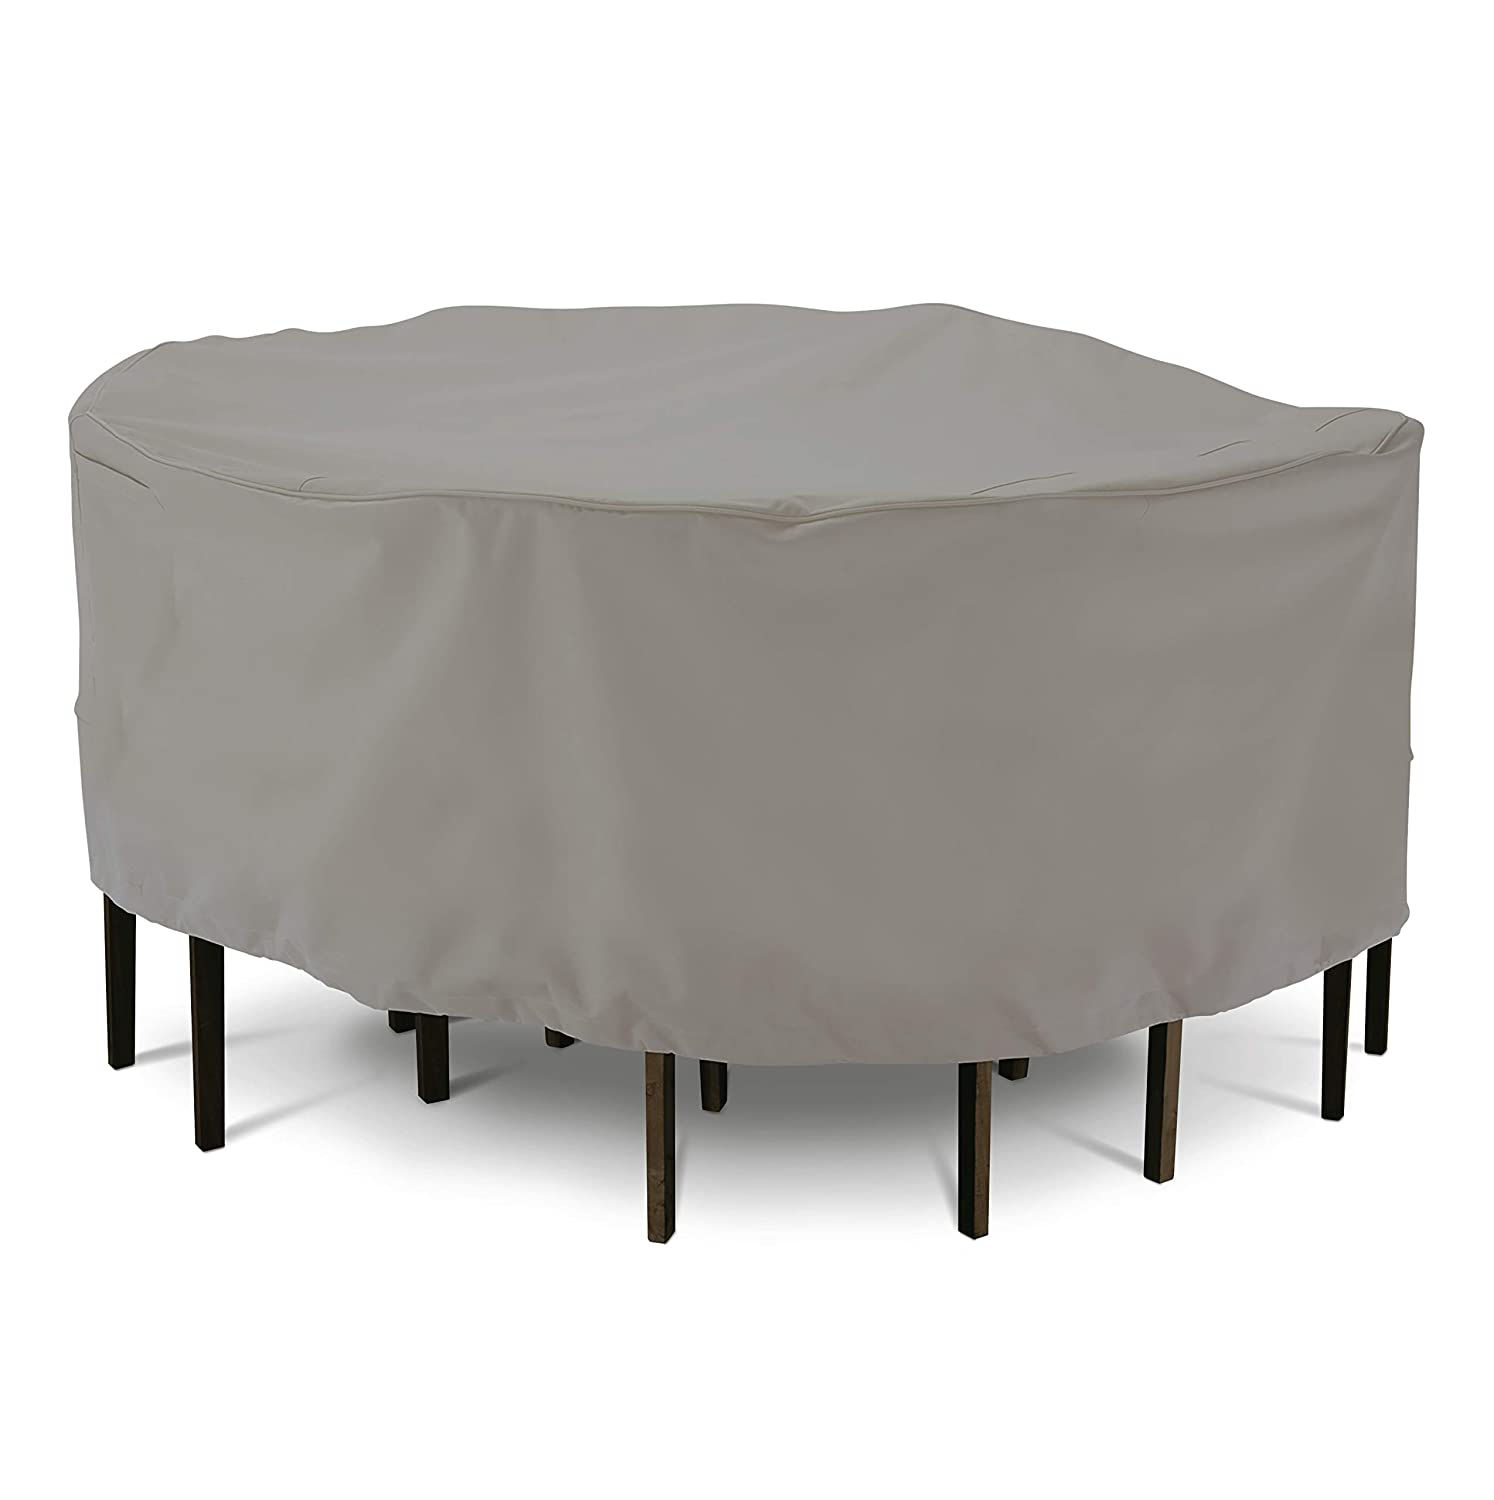 AmazonBasics Patio Round Table Chair Cover, Medium, Grey